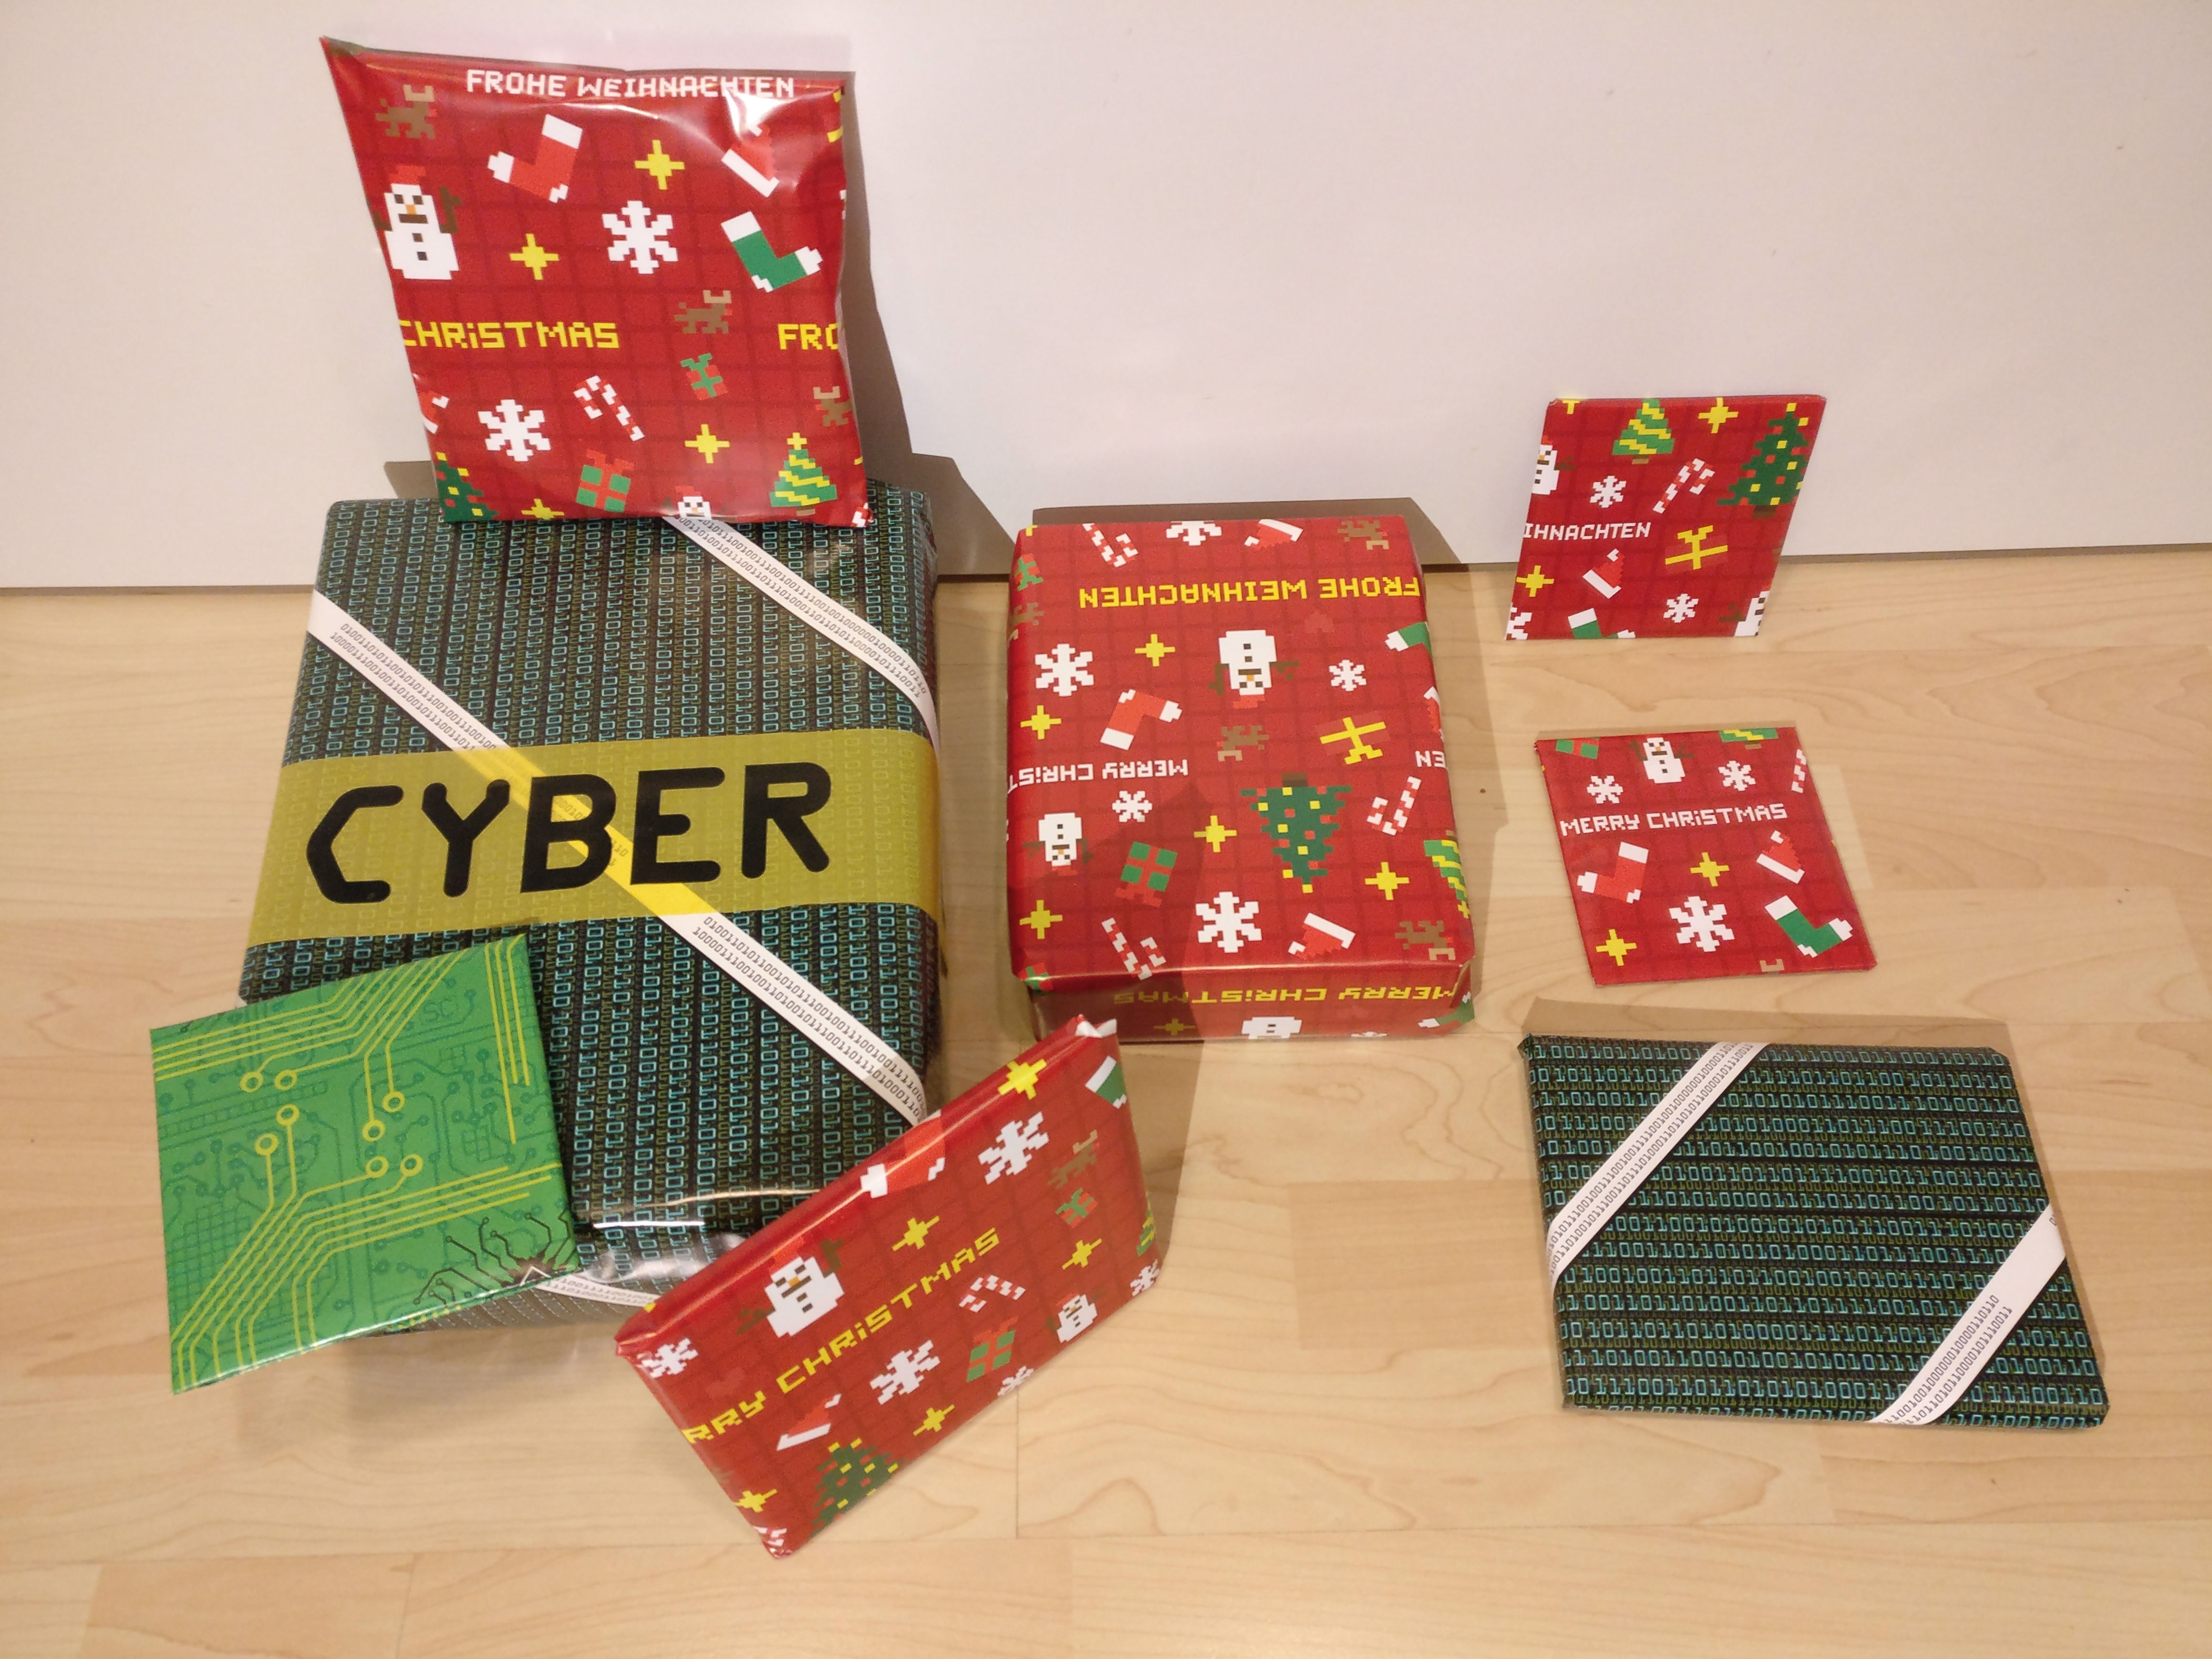 Geek Wrapping Paper Getdigital Circuit Board Picture Frame Armory Customer Photo 1